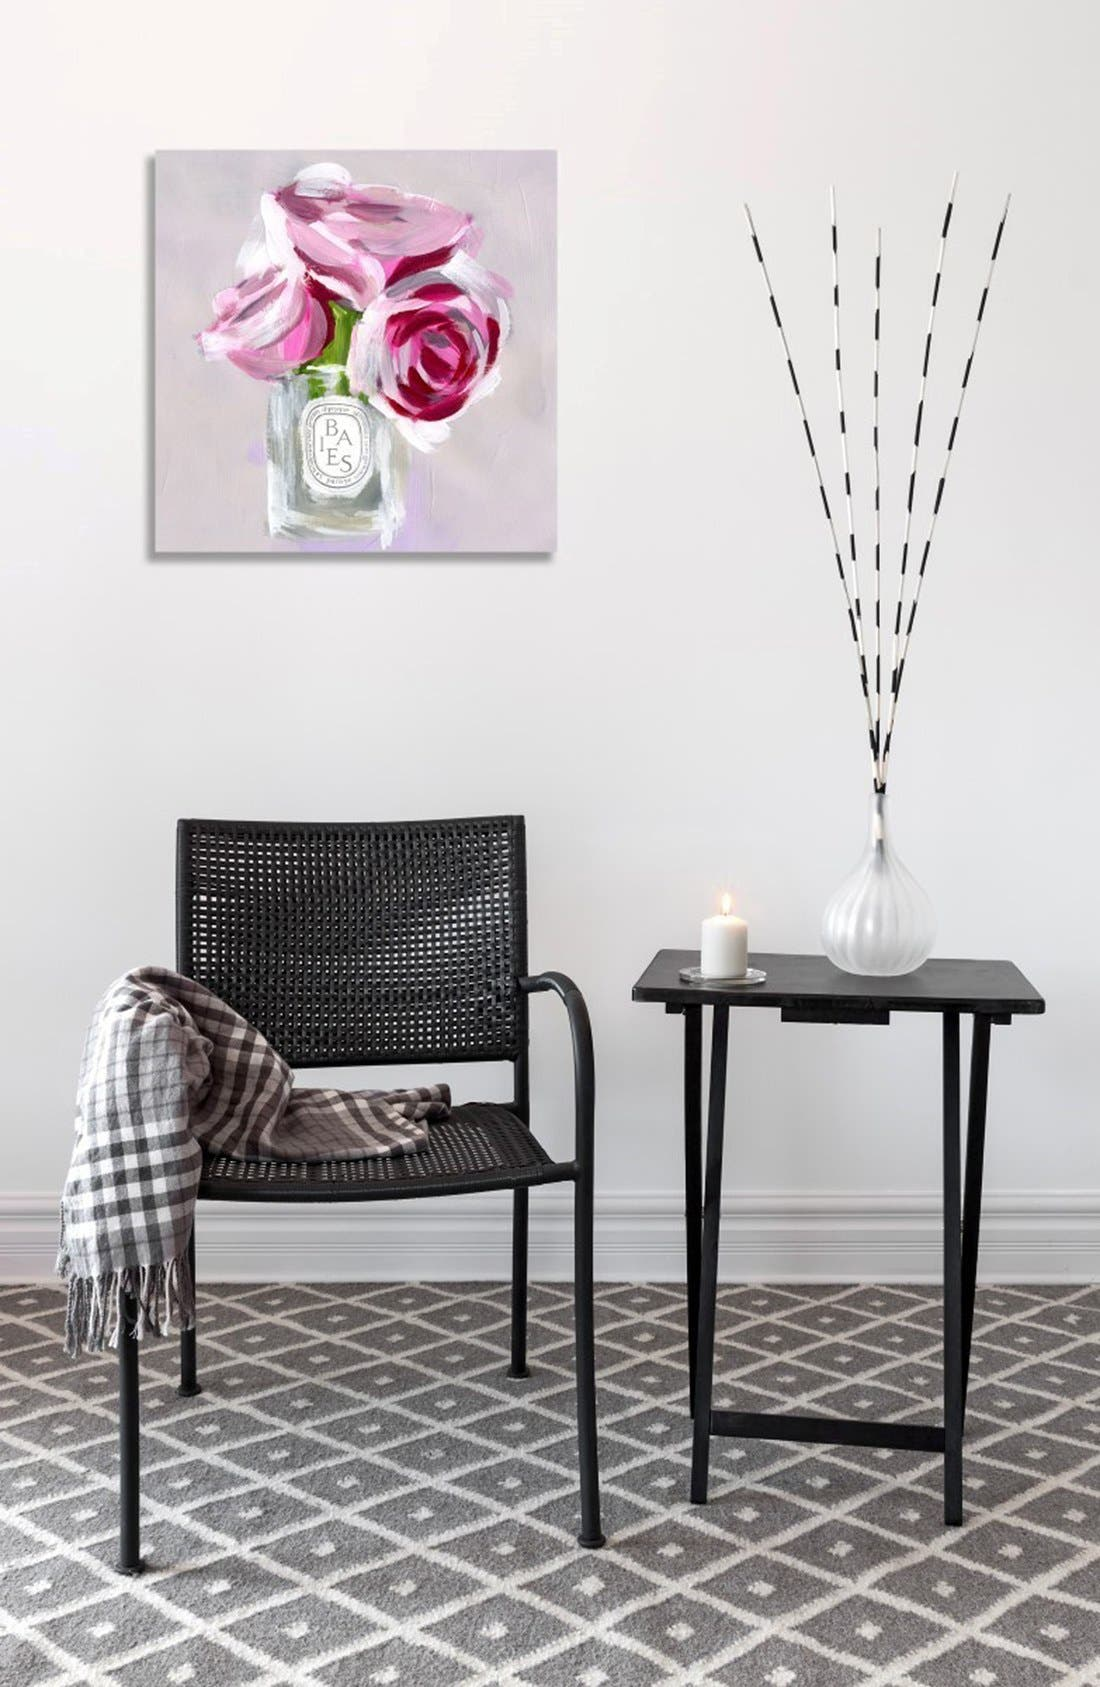 'Rose Candle' Canvas Wall Art,                             Alternate thumbnail 4, color,                             020